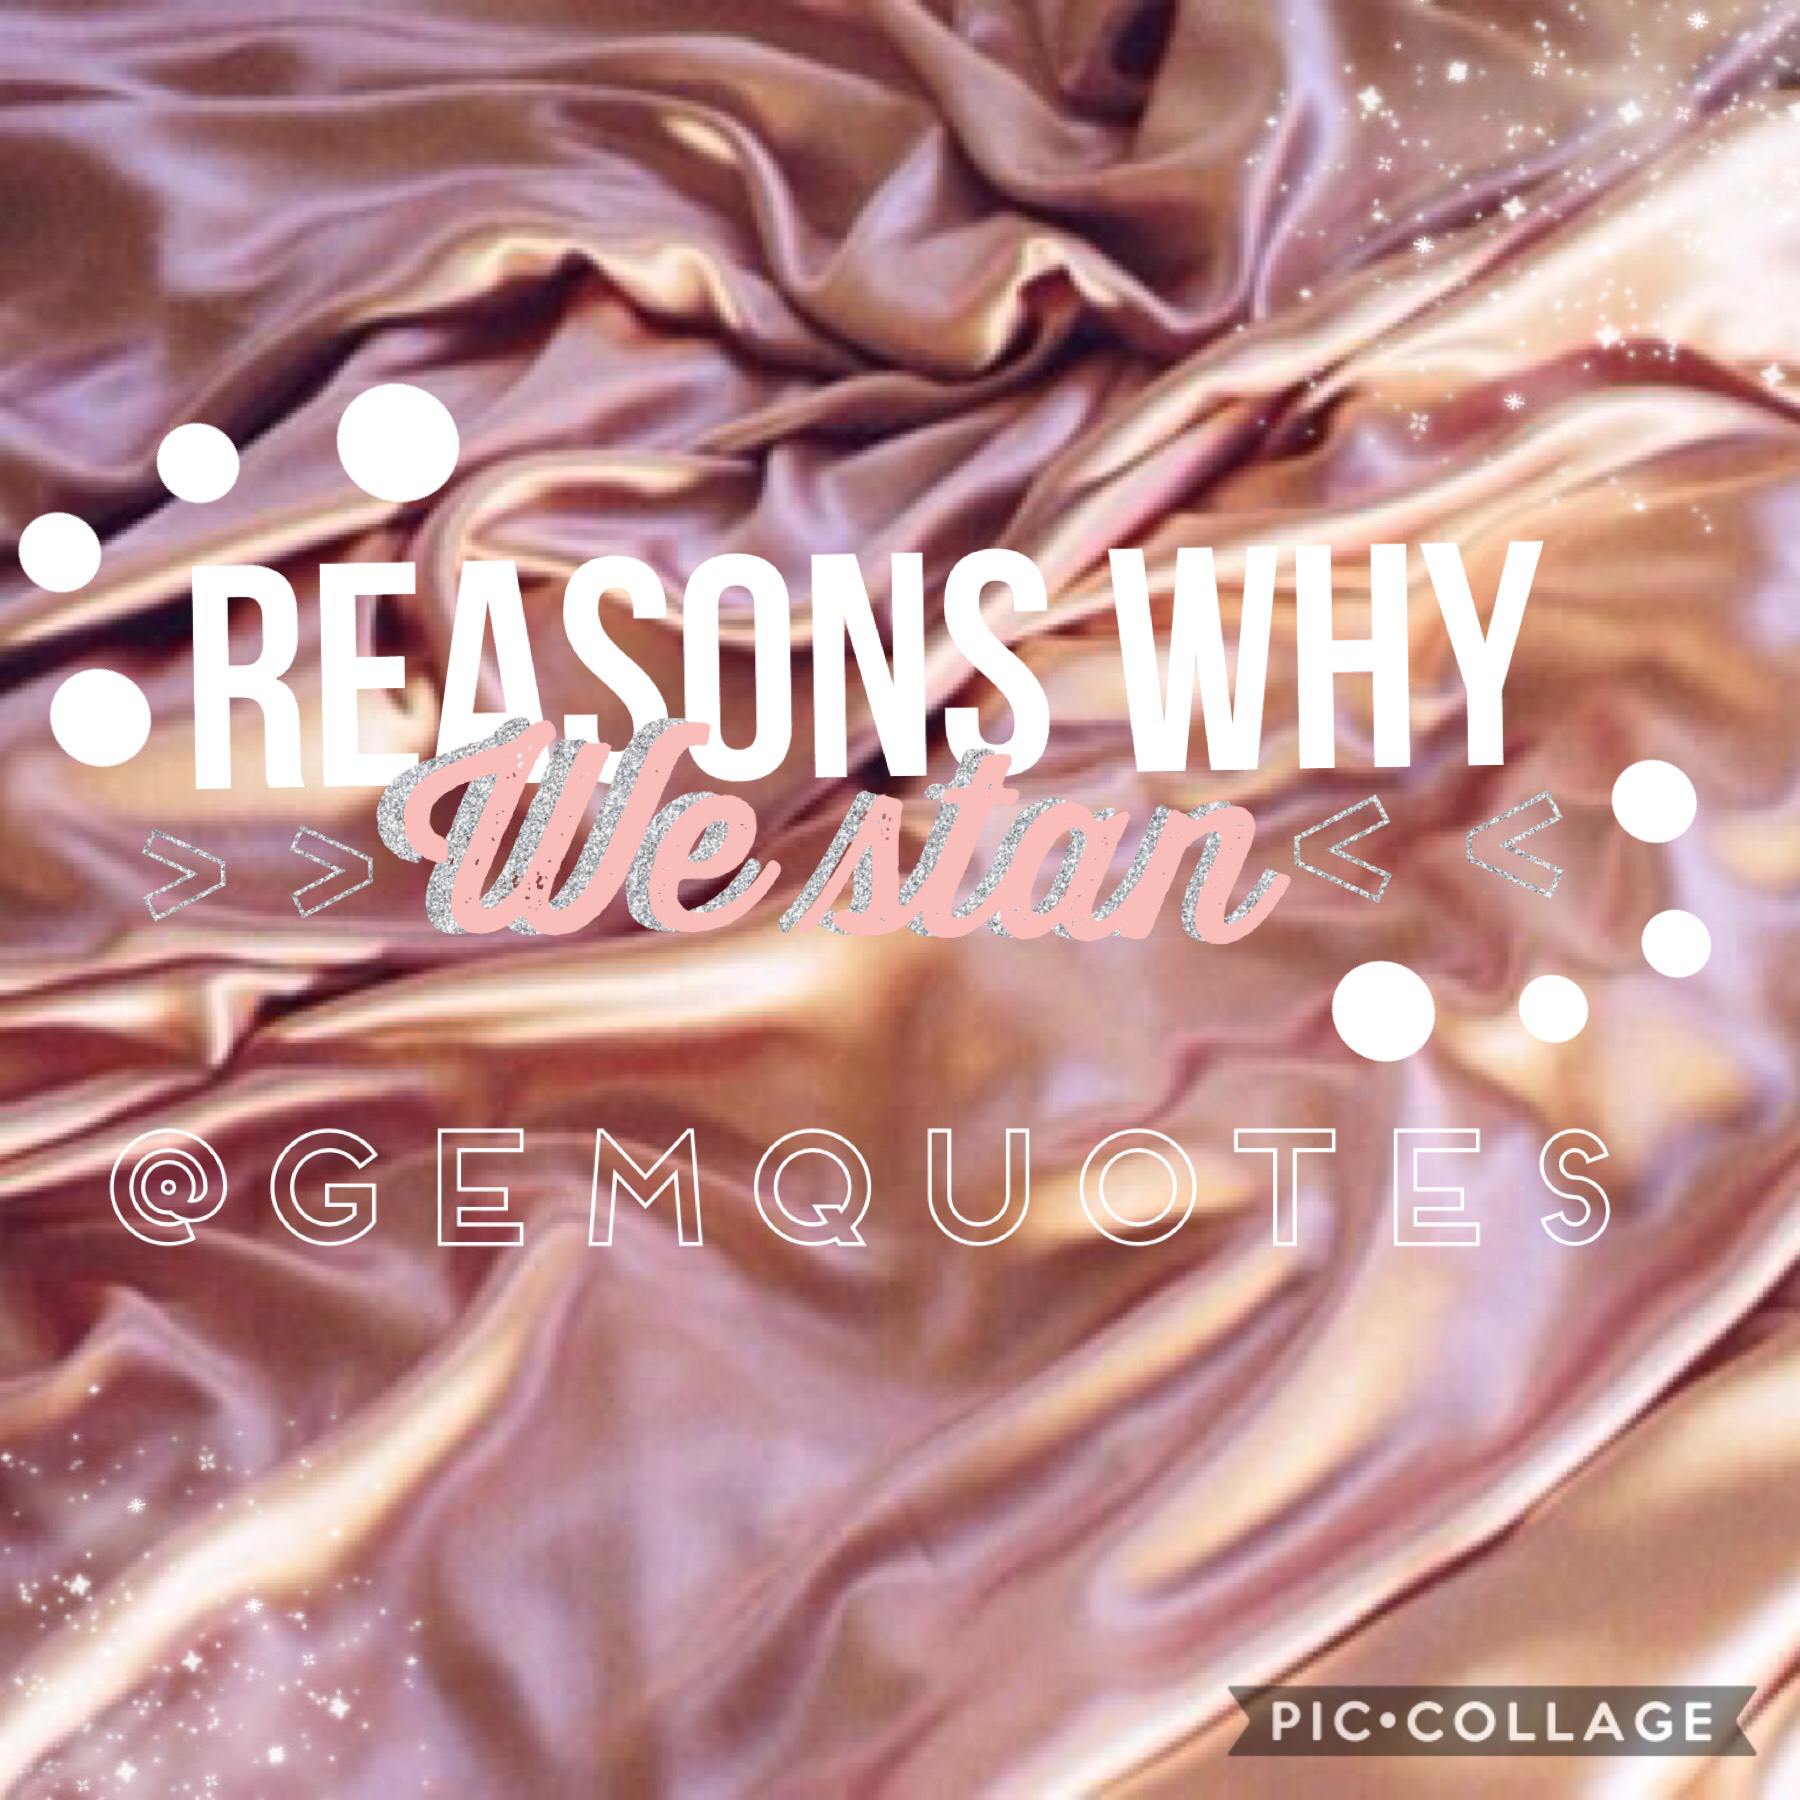 TAPPP✨ Hi so I made this fanpage becuase @gemquotes is a legend and she's v creative and she deserves this💓🏹👼🏼 we love you queen💓💓✨✨✨👑👑my main is @angelduhst